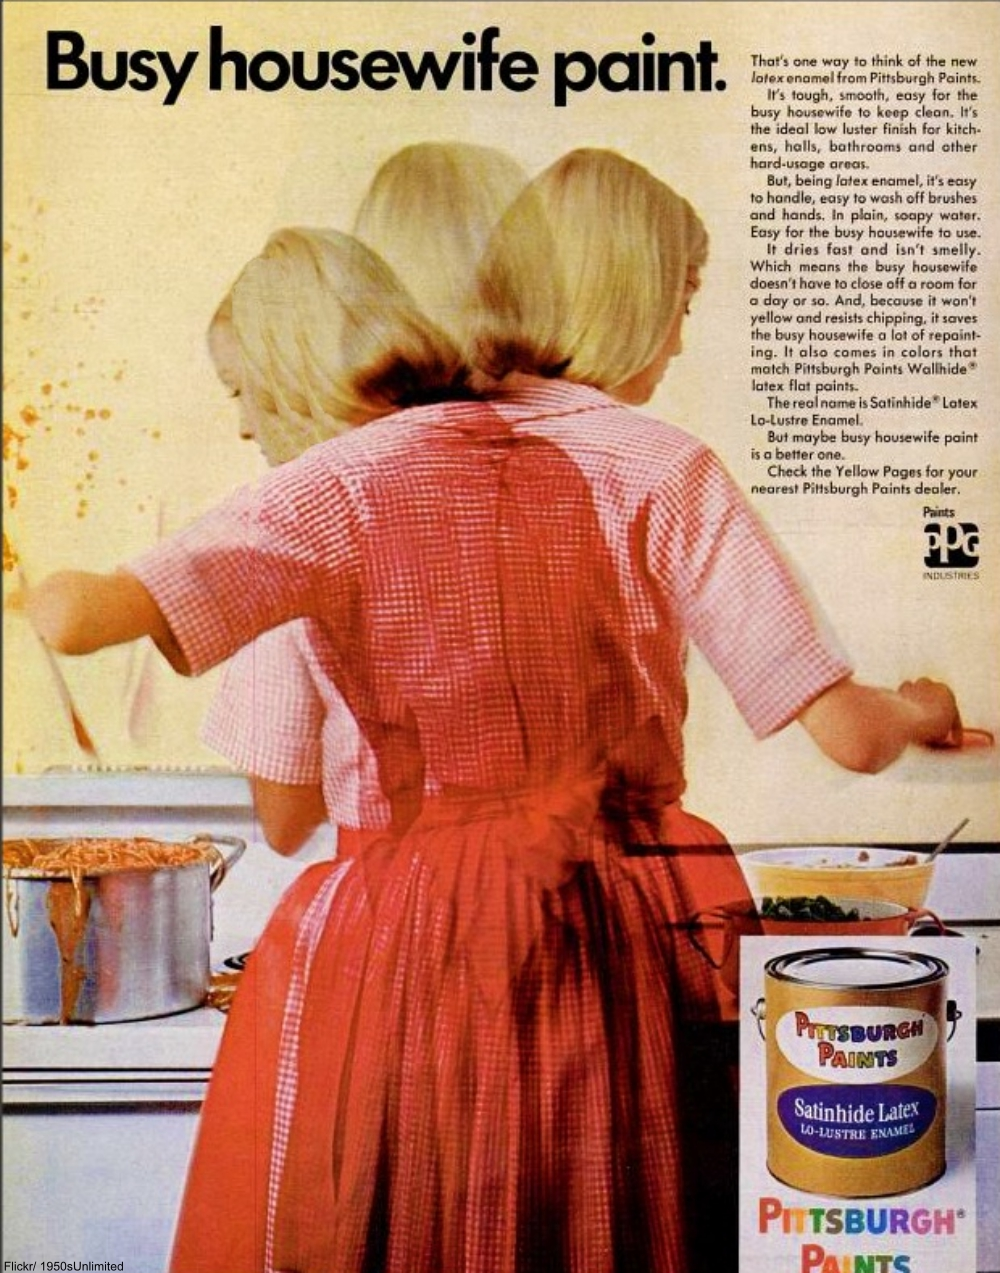 Vintage Advertisements That Would Never Fly Today!